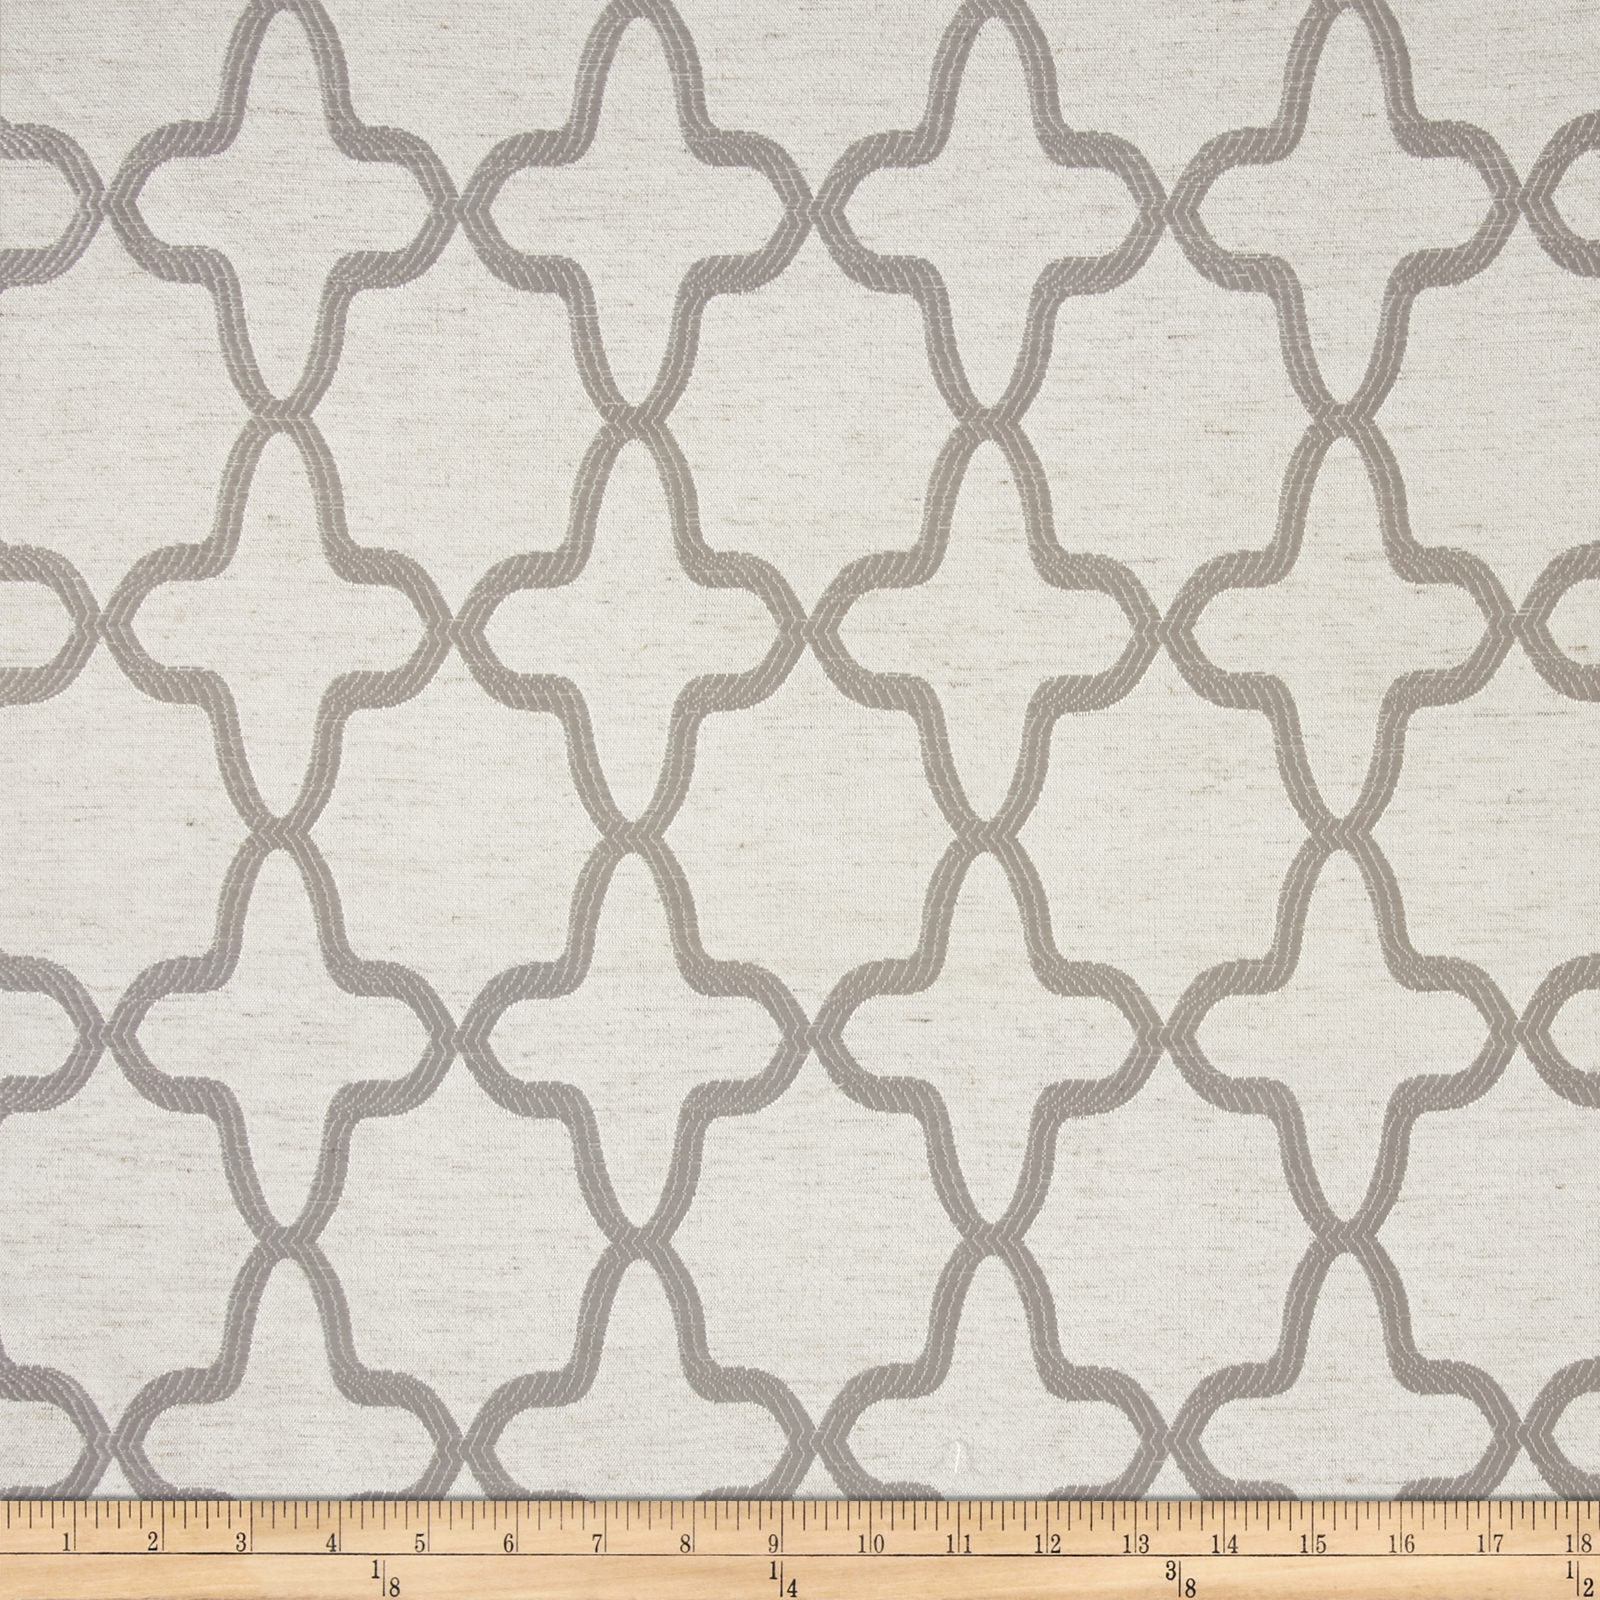 Eroica Manchester Jacquard Silver Fabric by Eroica in USA